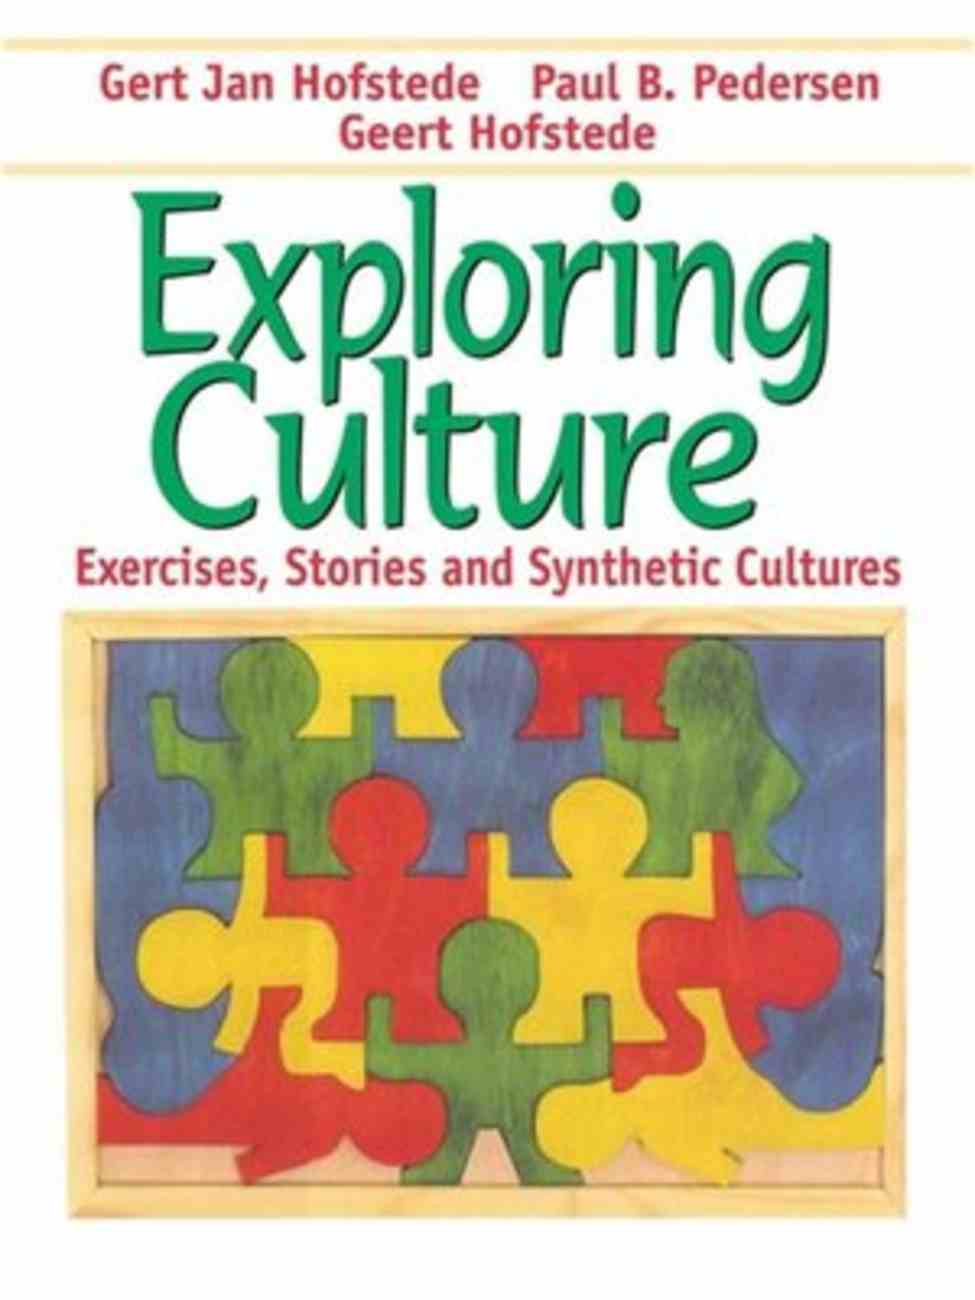 Exploring Culture: Exercises, Stories and Synthetic Cultures Paperback